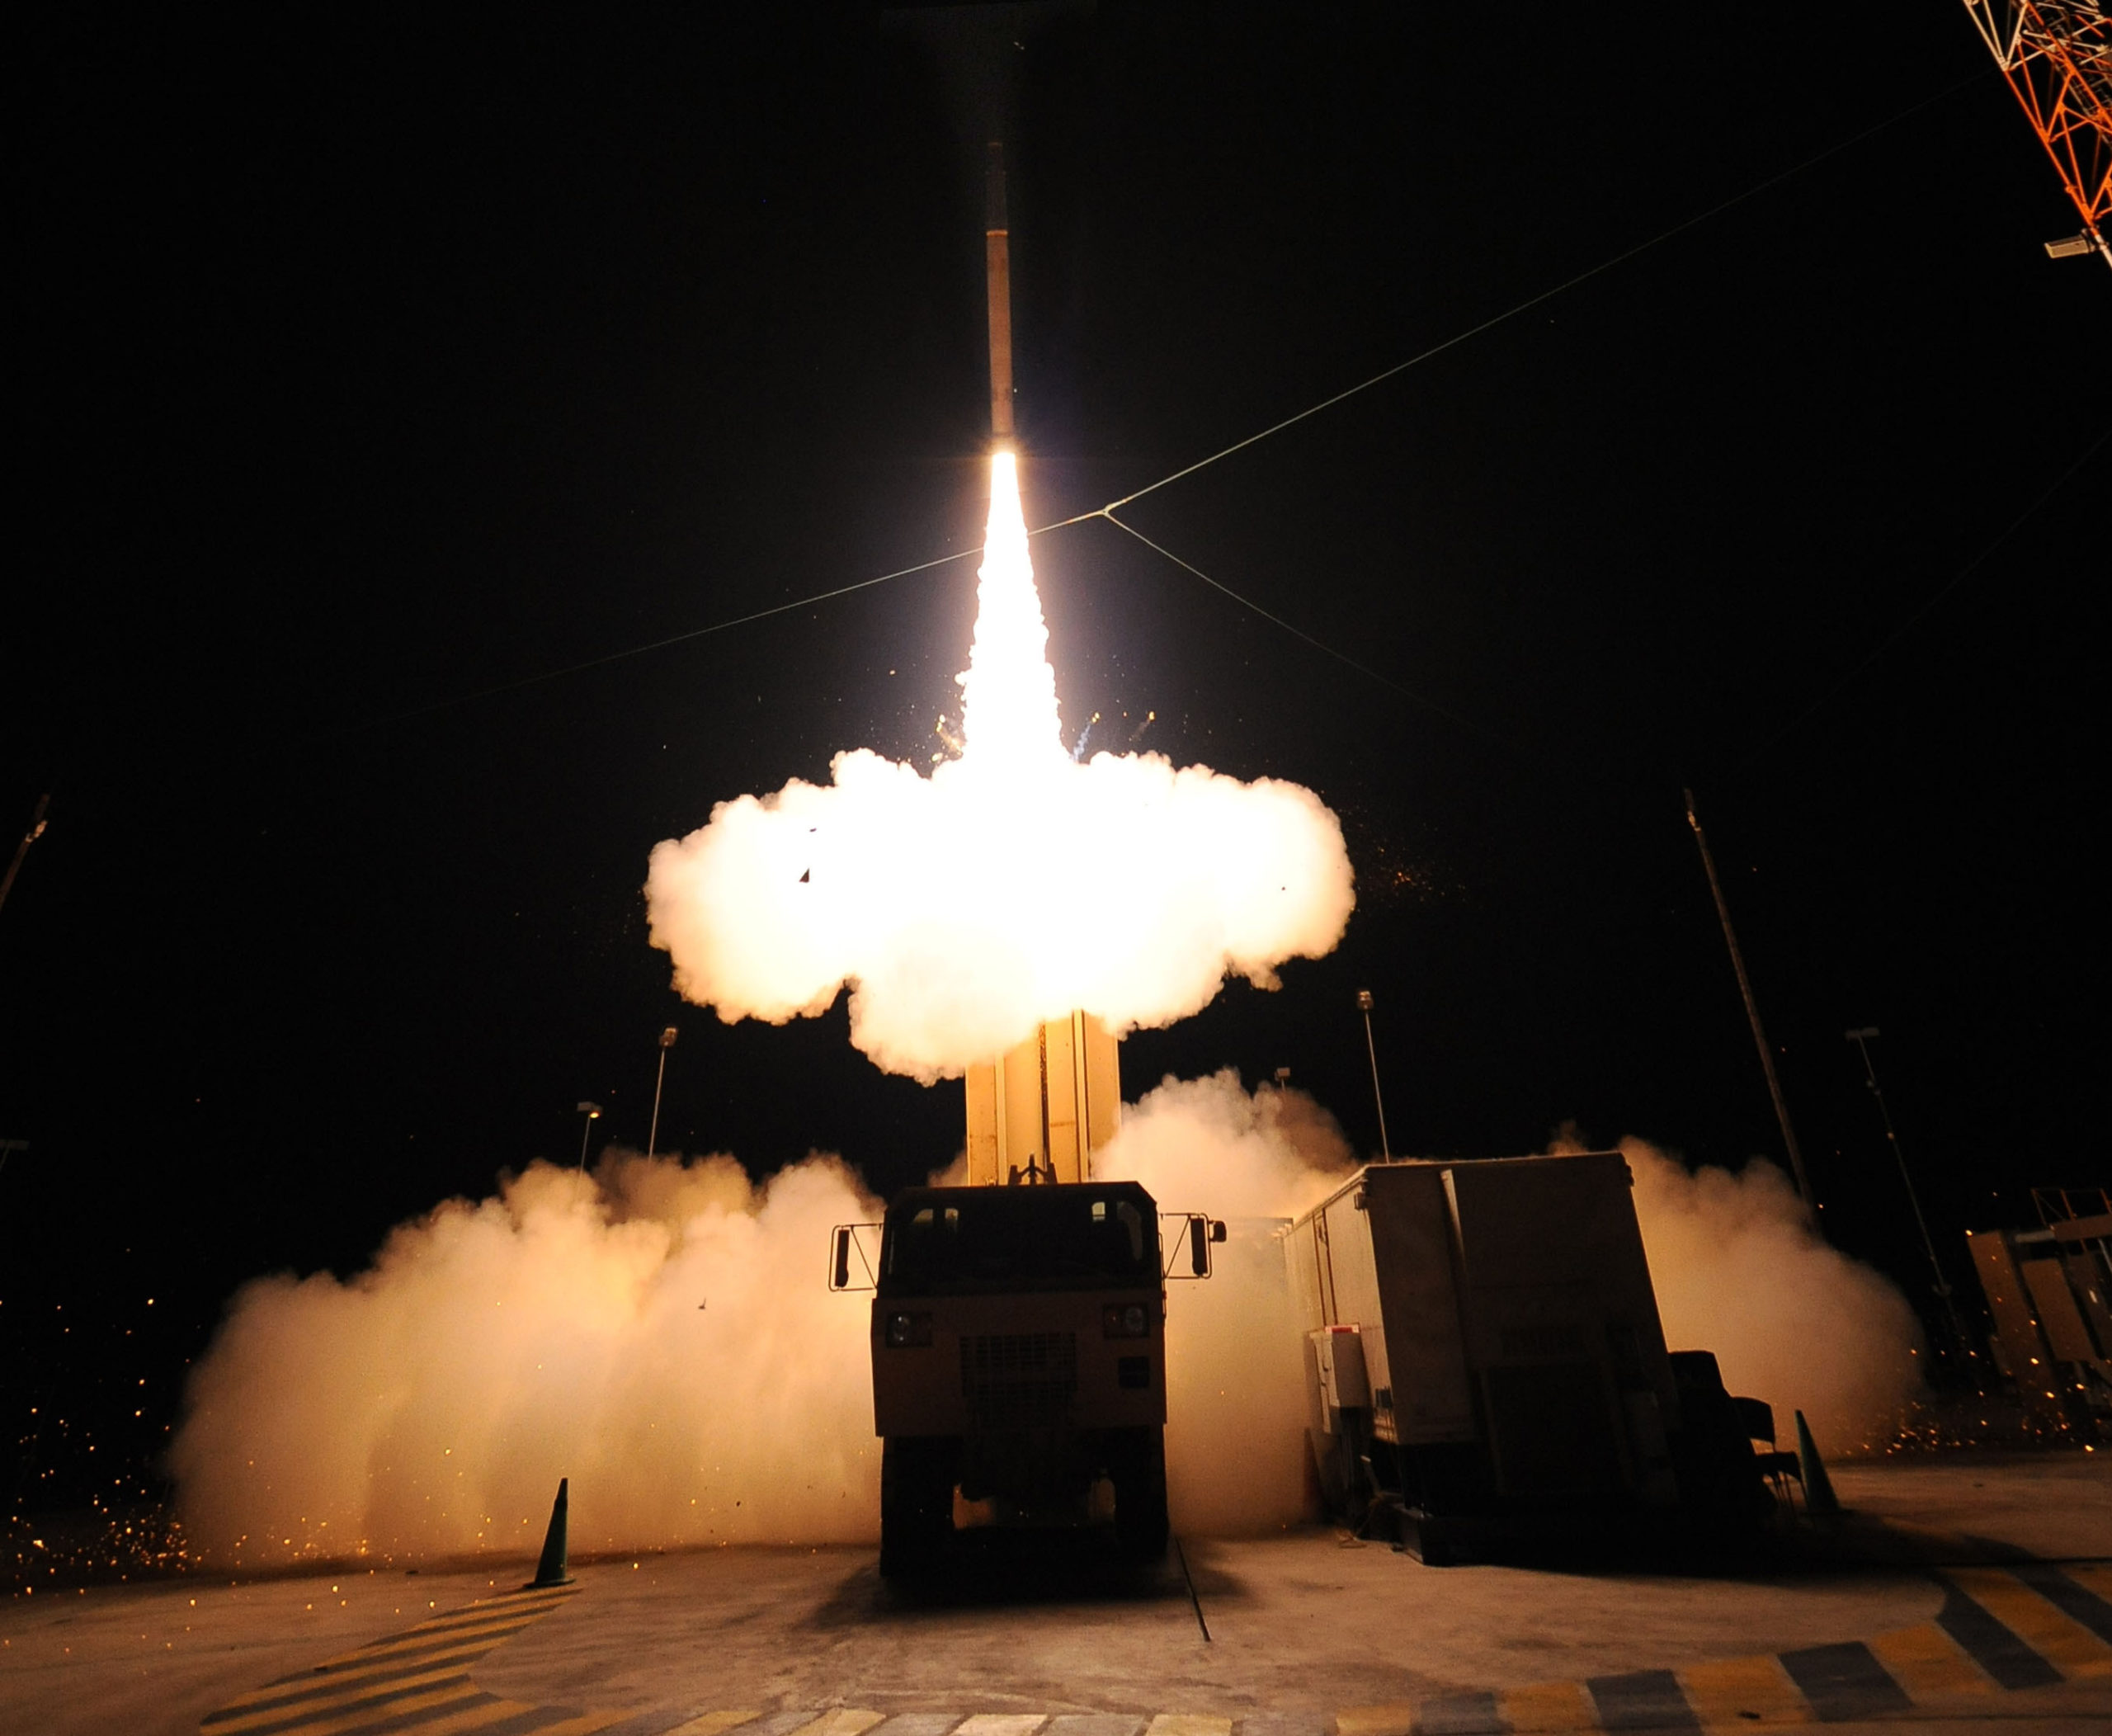 On June 29th Lockeed Martin conducted a successful flight test of the Terminal High Altitude Area Defense (THAAD) Weapon System at the Pacific Missile Range Facility on Kauai, Hawaii.  (PRNewsFoto/Lockheed Martin)